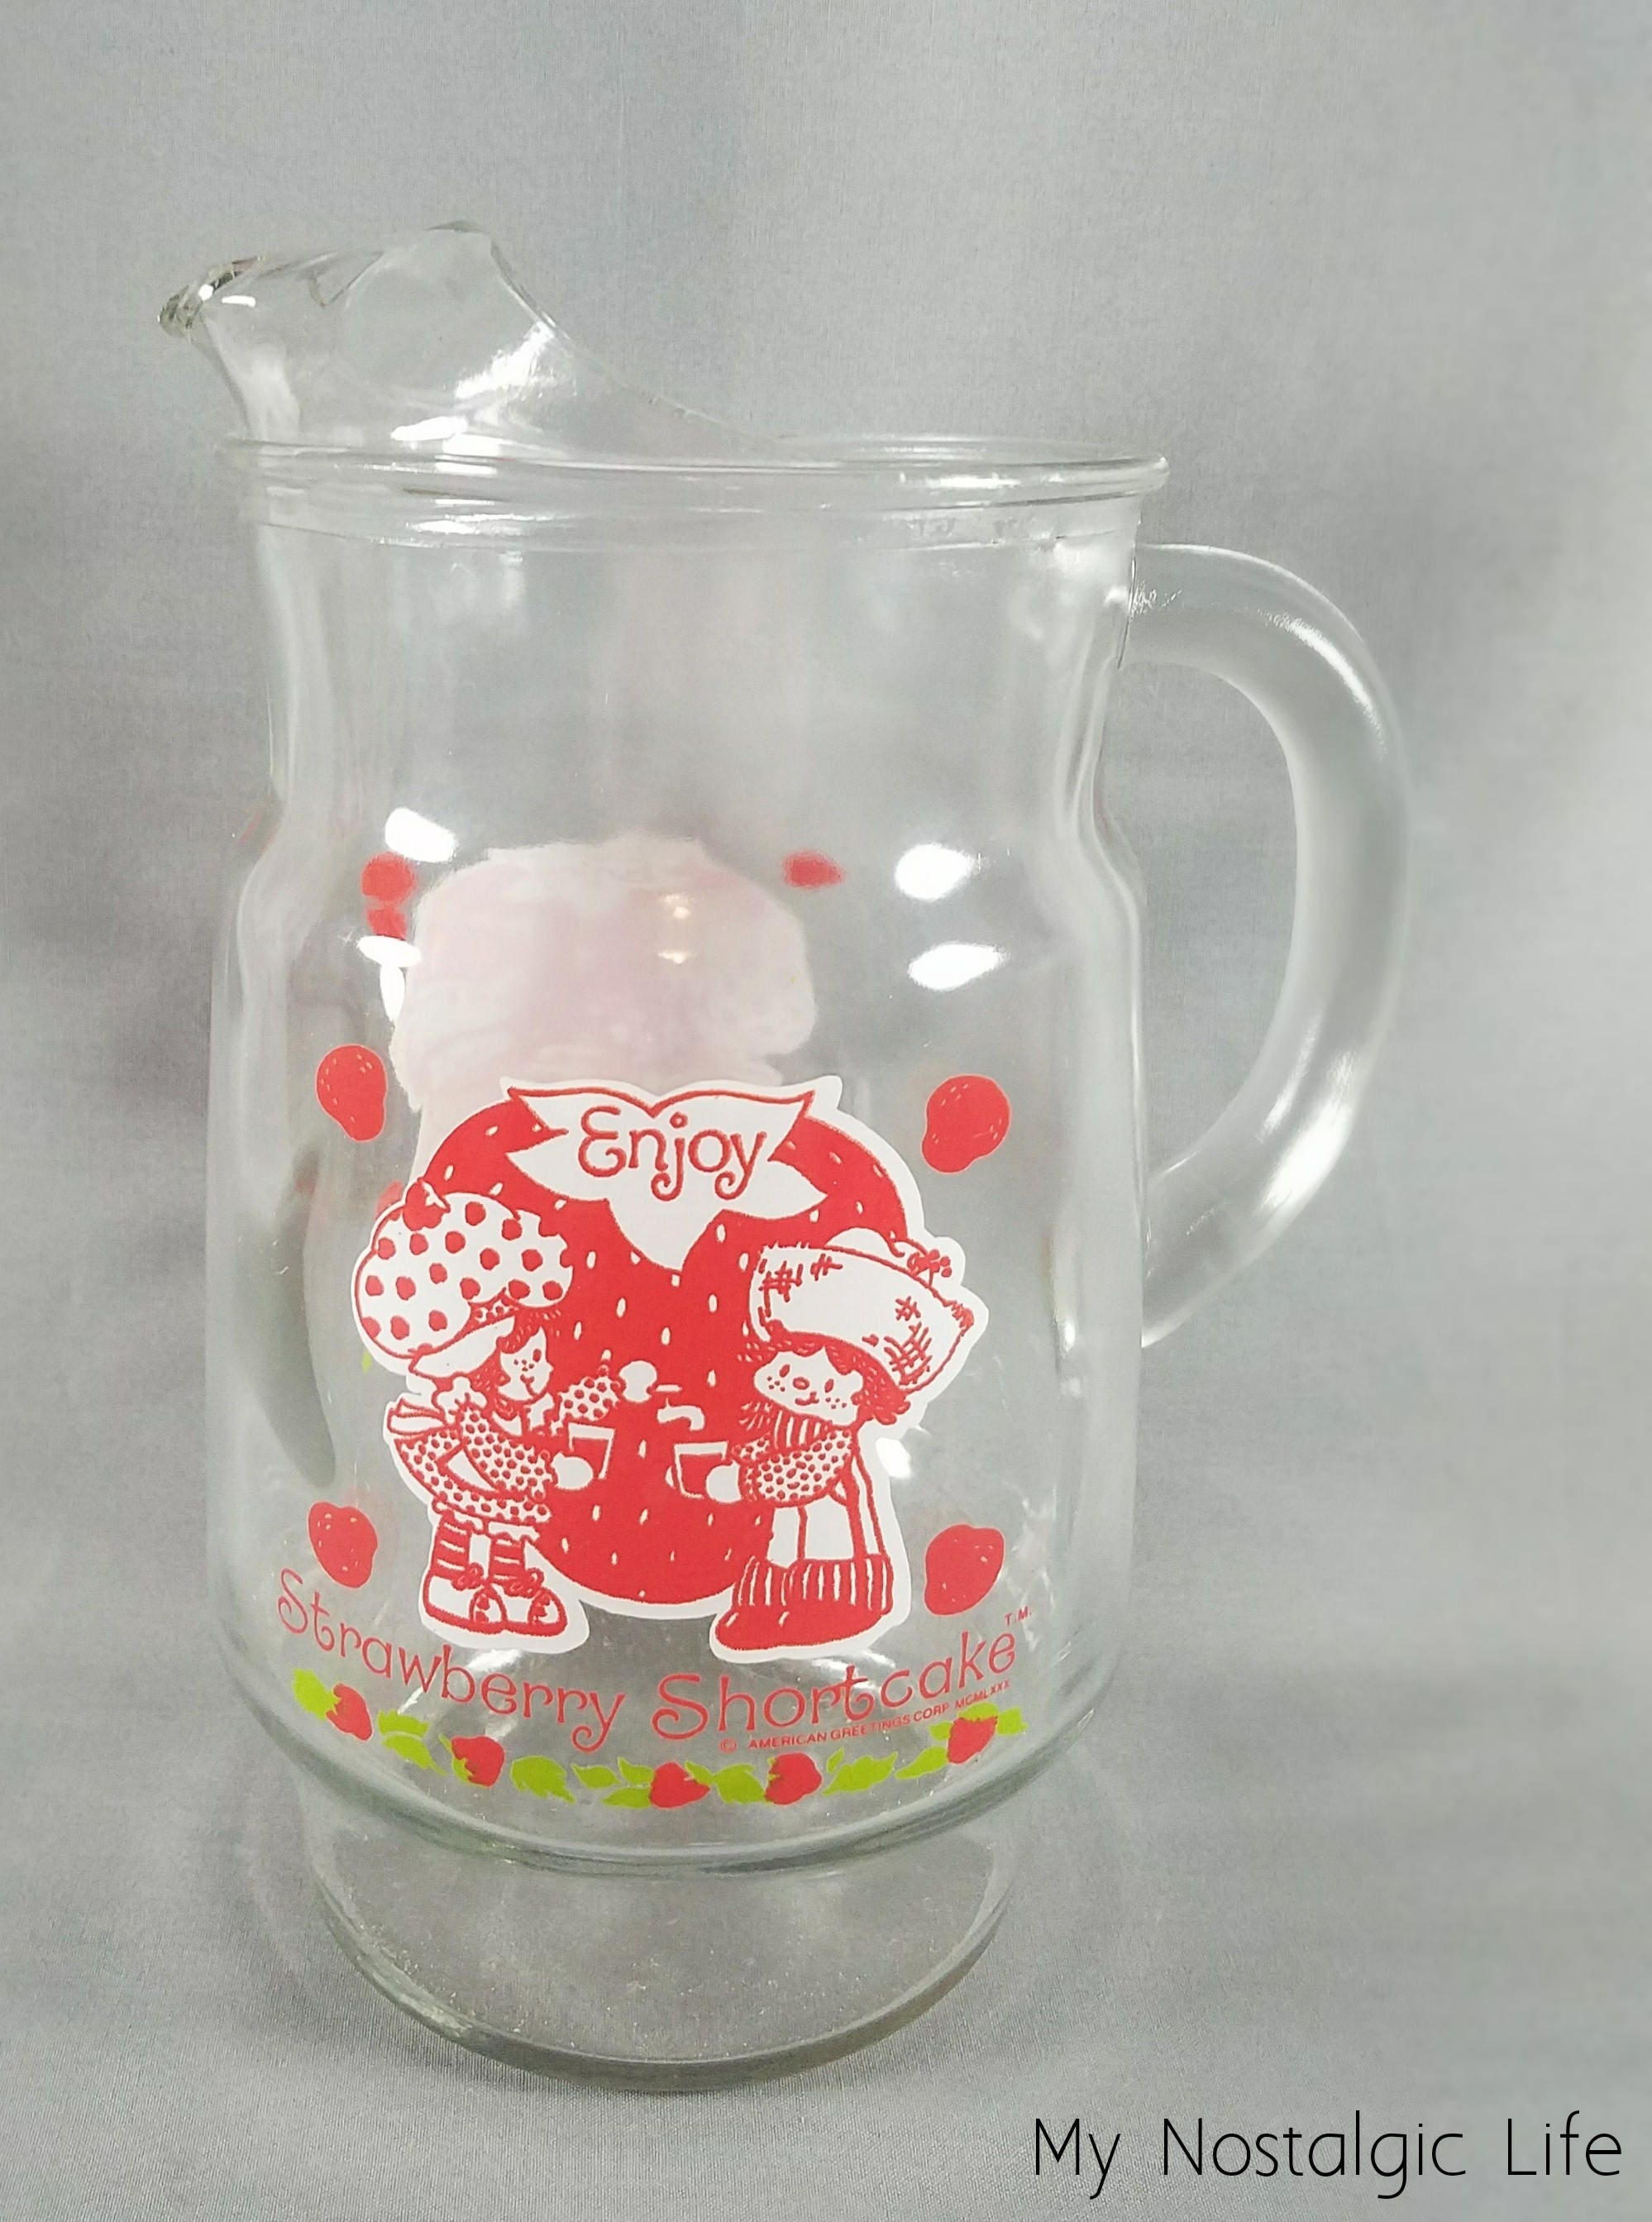 Original Strawberry Shortcake Enjoy Pitcher